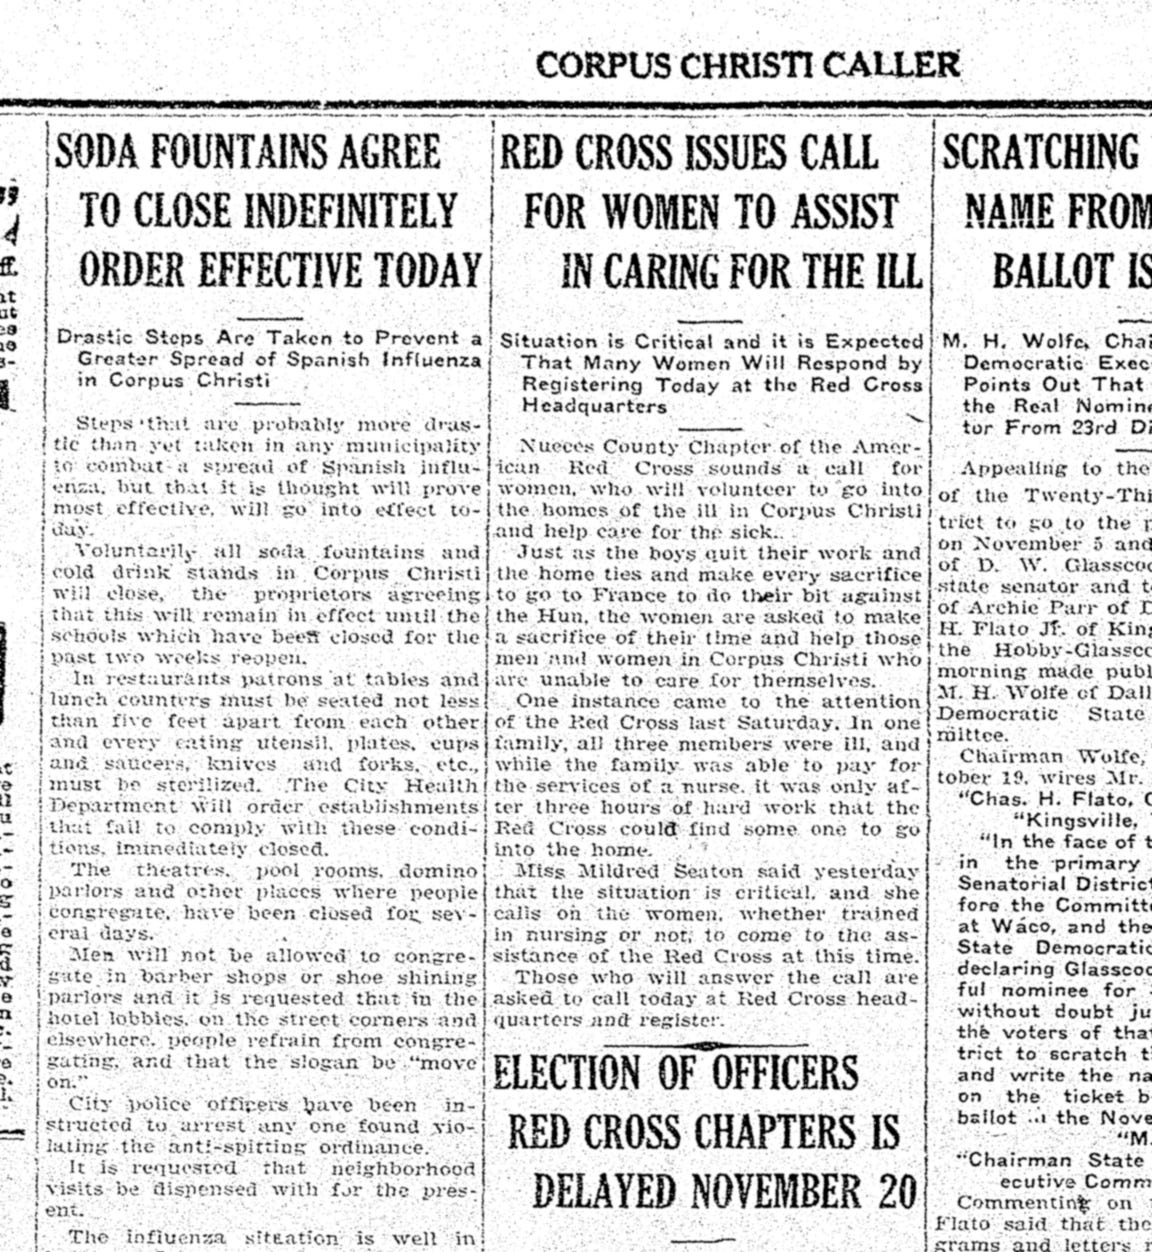 Businesses agreed to close in Corpus Christi as the 1918 influenza epidemic worsened, as seen in the Tuesday, Oct. 22, 1918 issue of the Corpus Christi Caller.